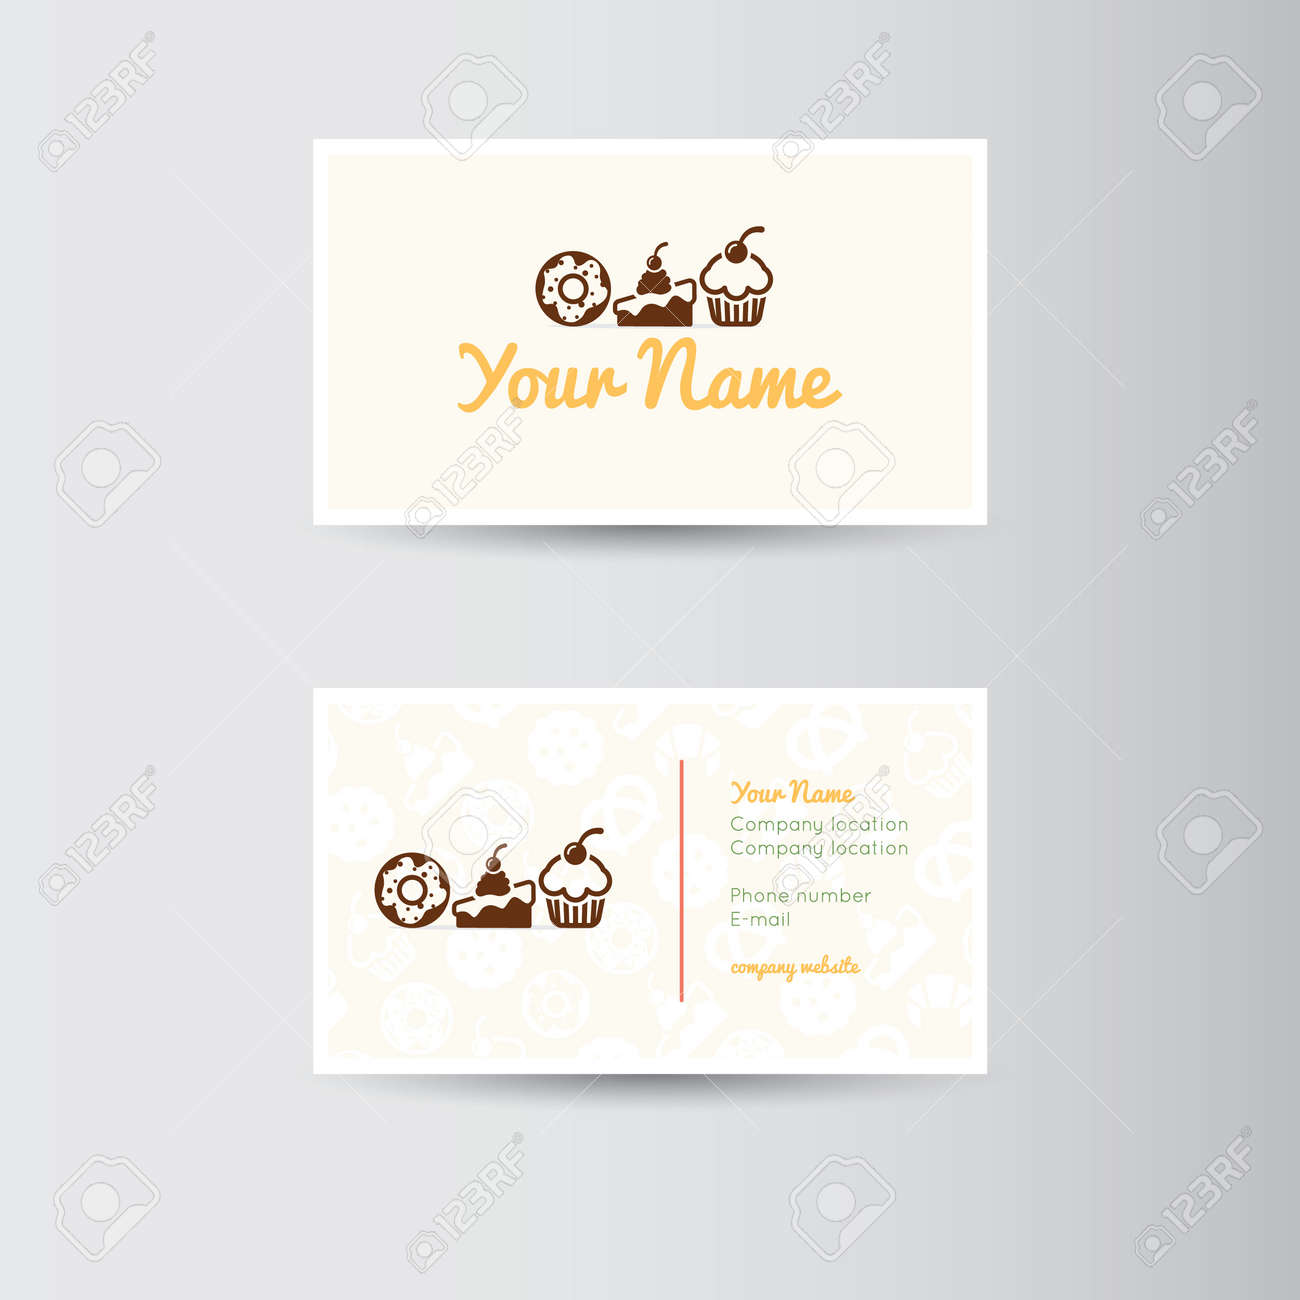 Simple Business Card For Bakery Or Cake Shop Business Royalty Free ...